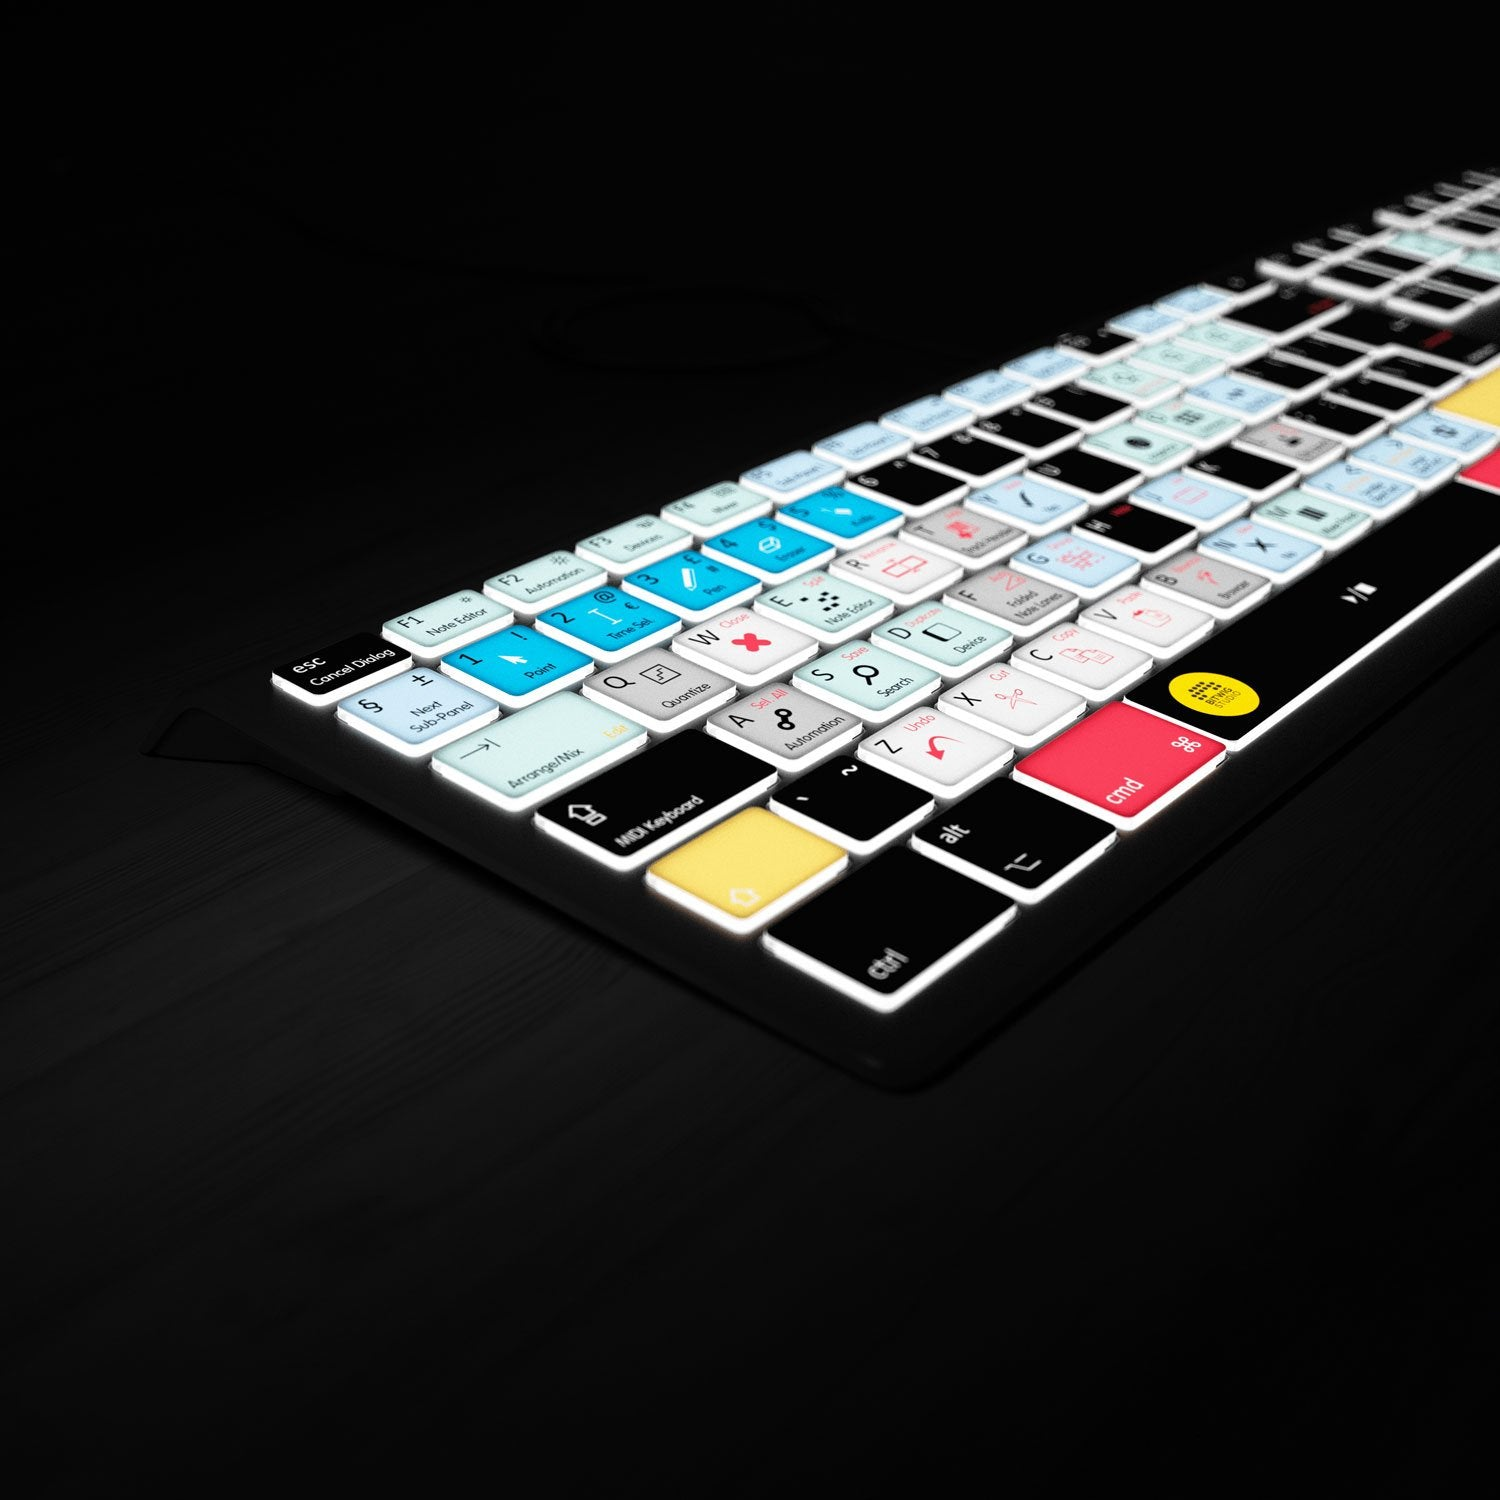 Bitwig Studio Keyboard - Backlit - For Mac or PC